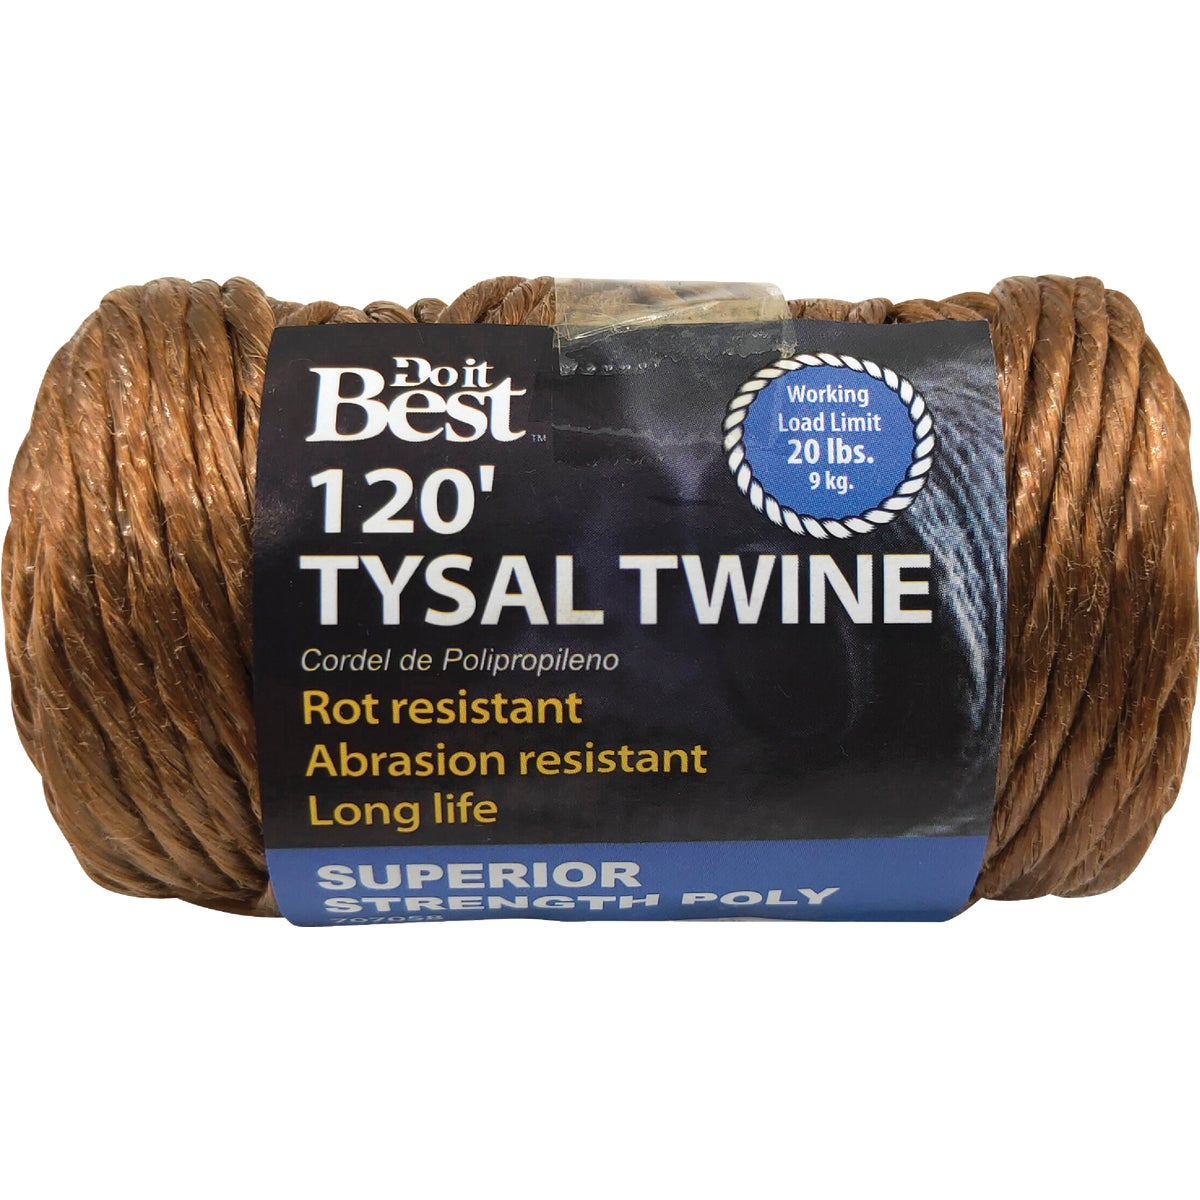 120' POLY TYSAL TWINE - 707058 by Do it Best